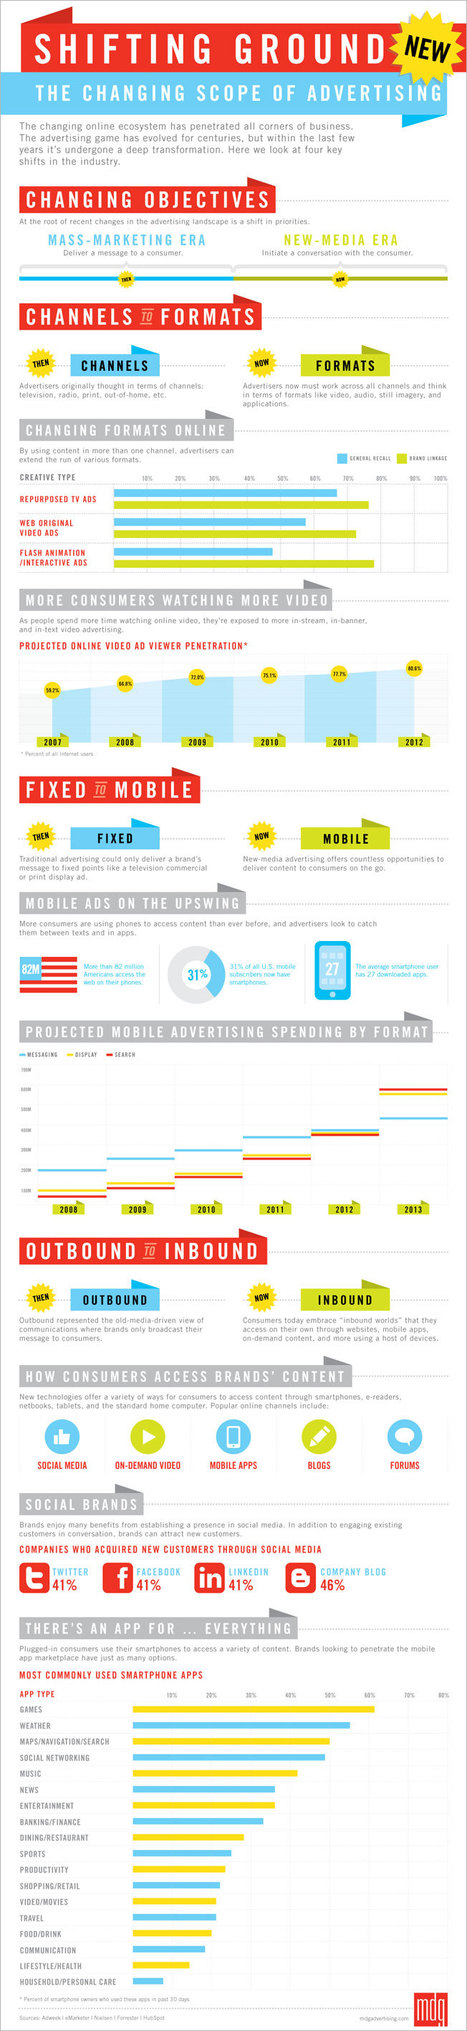 Infographic: The Changing Scope of Advertising | Adweek | Marketing Strategy and Business | Scoop.it